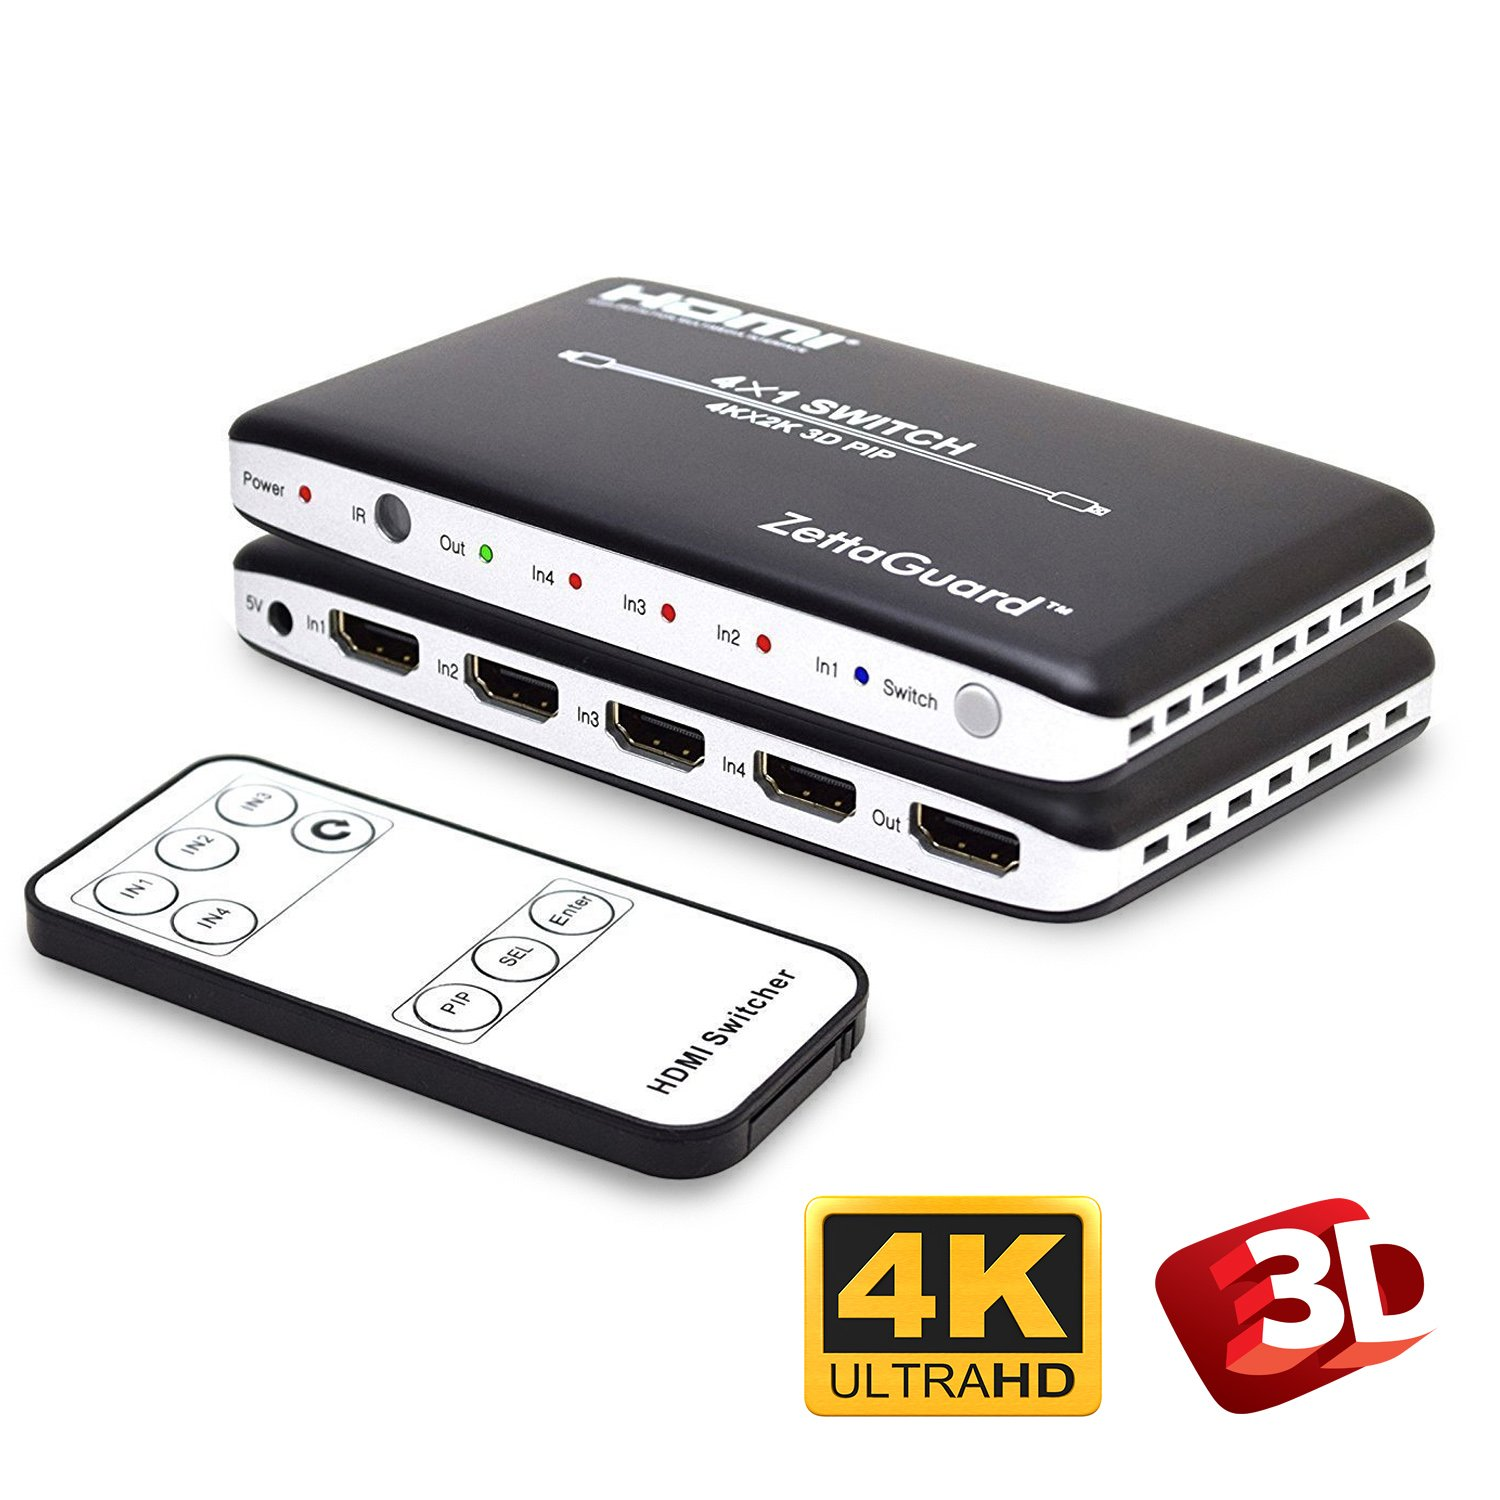 Zettaguard 4K x 2K 4 Port 4 x 1 HDMI Switch with PIP and IR Wireless Remote Control, HDMI Switcher Hub Port Switches (ZW410)